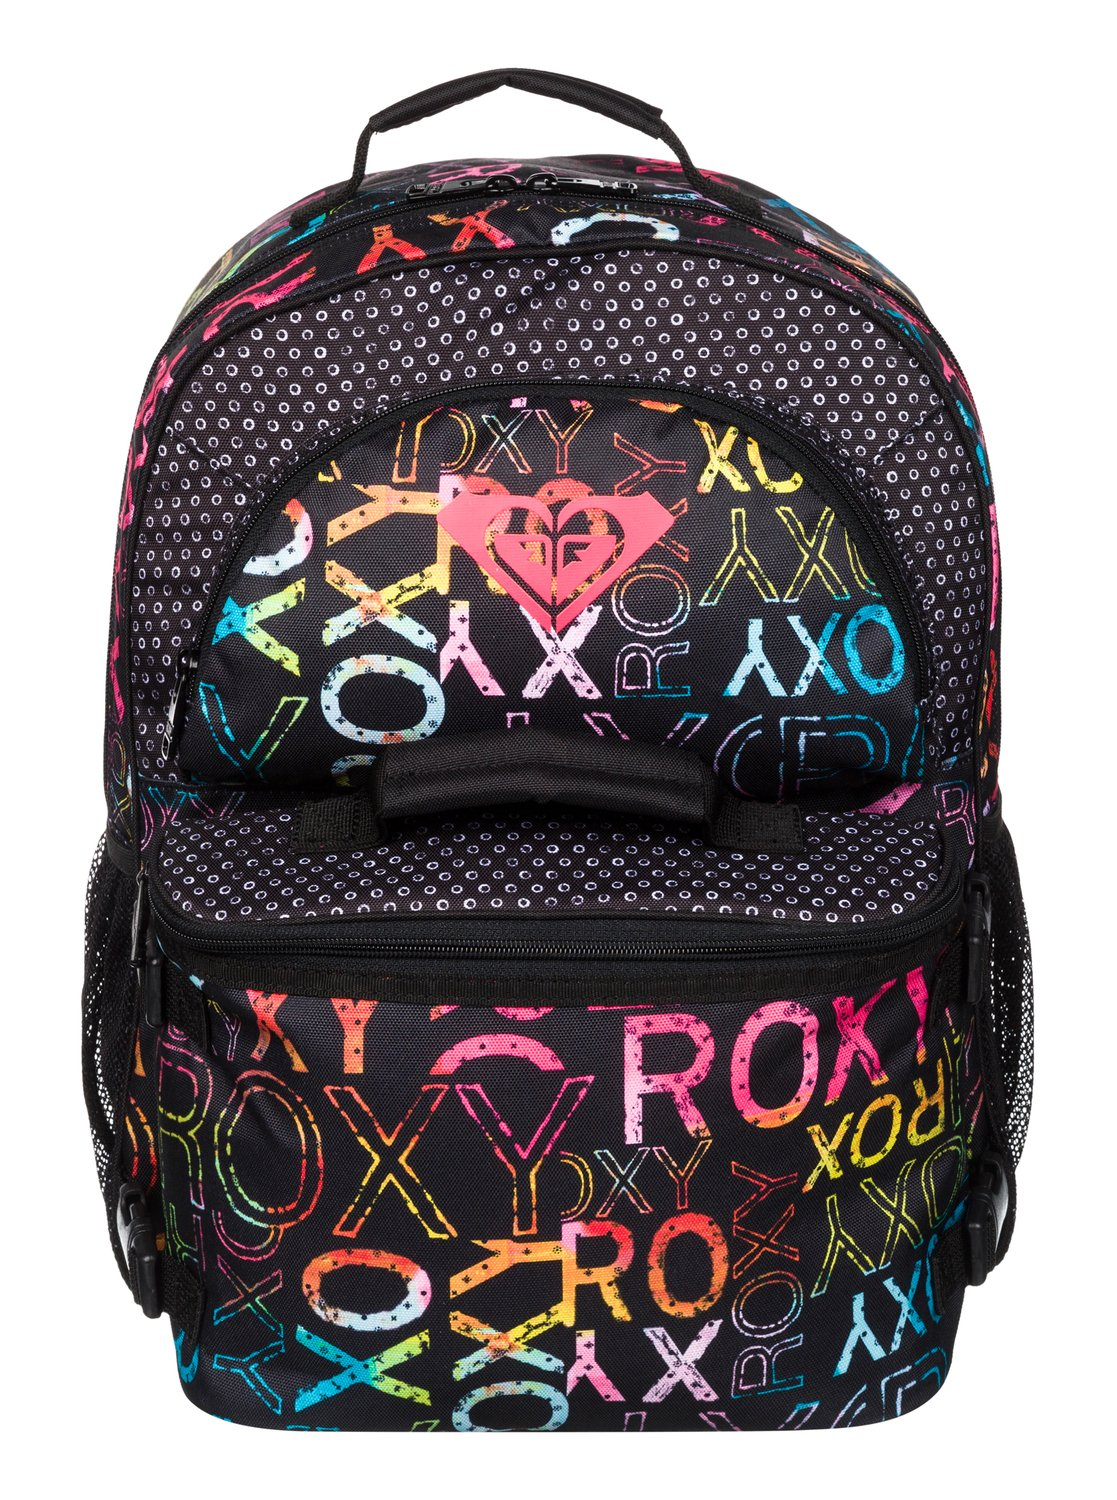 2c91569fa9 The results of the research roxy ladies backpack